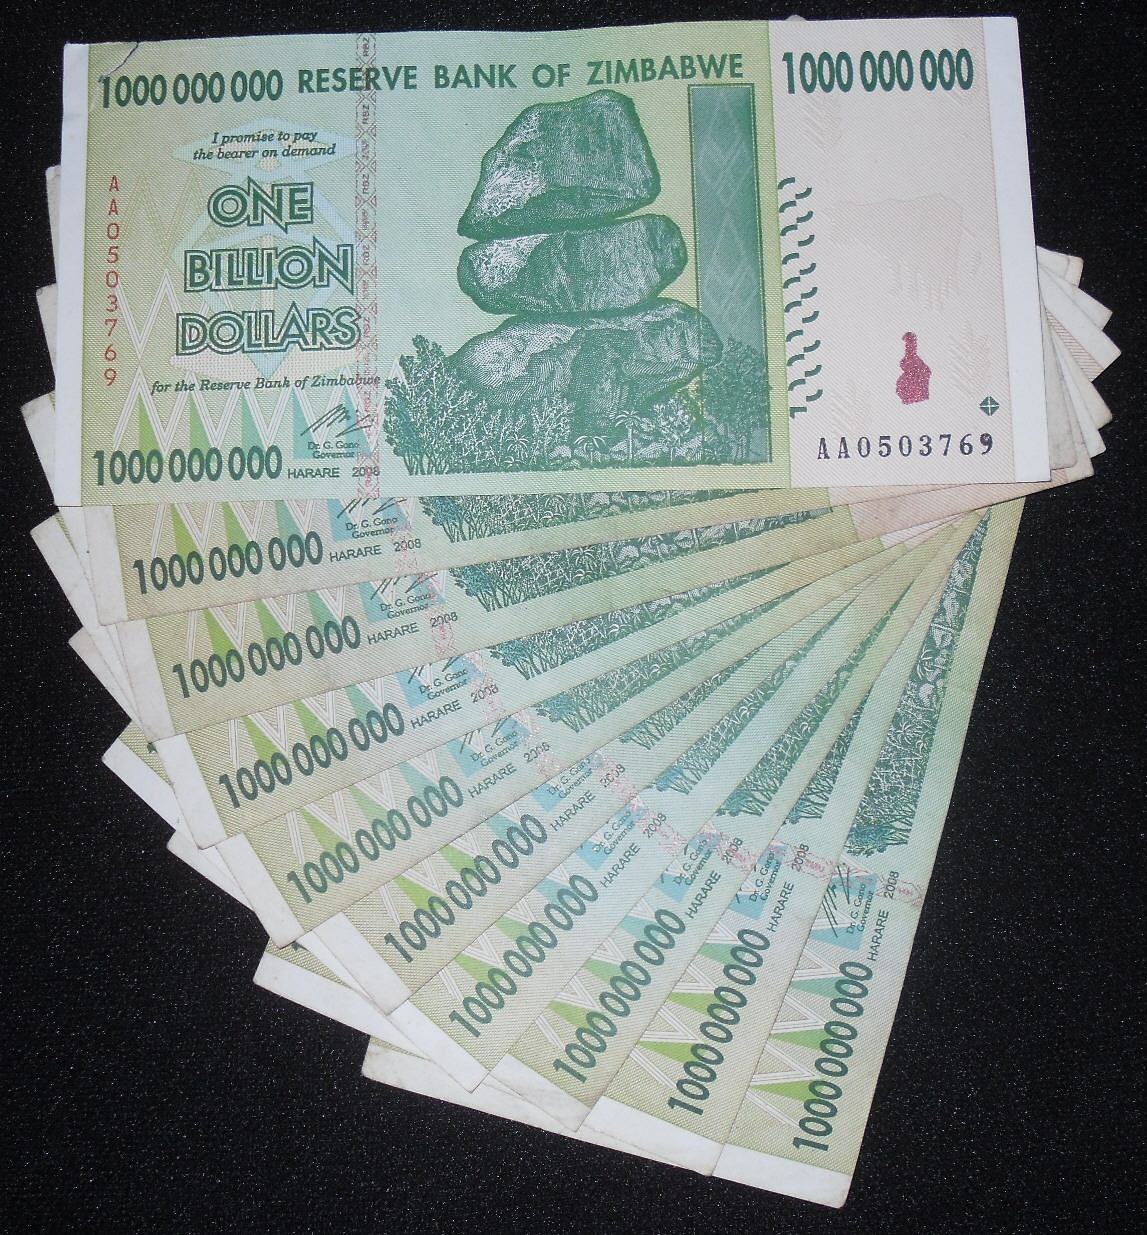 2007 UNC BANK NOTE WORLD FROM ZIMBABWE IN AFRICA 1 BEARER CHEQUE OF $1000